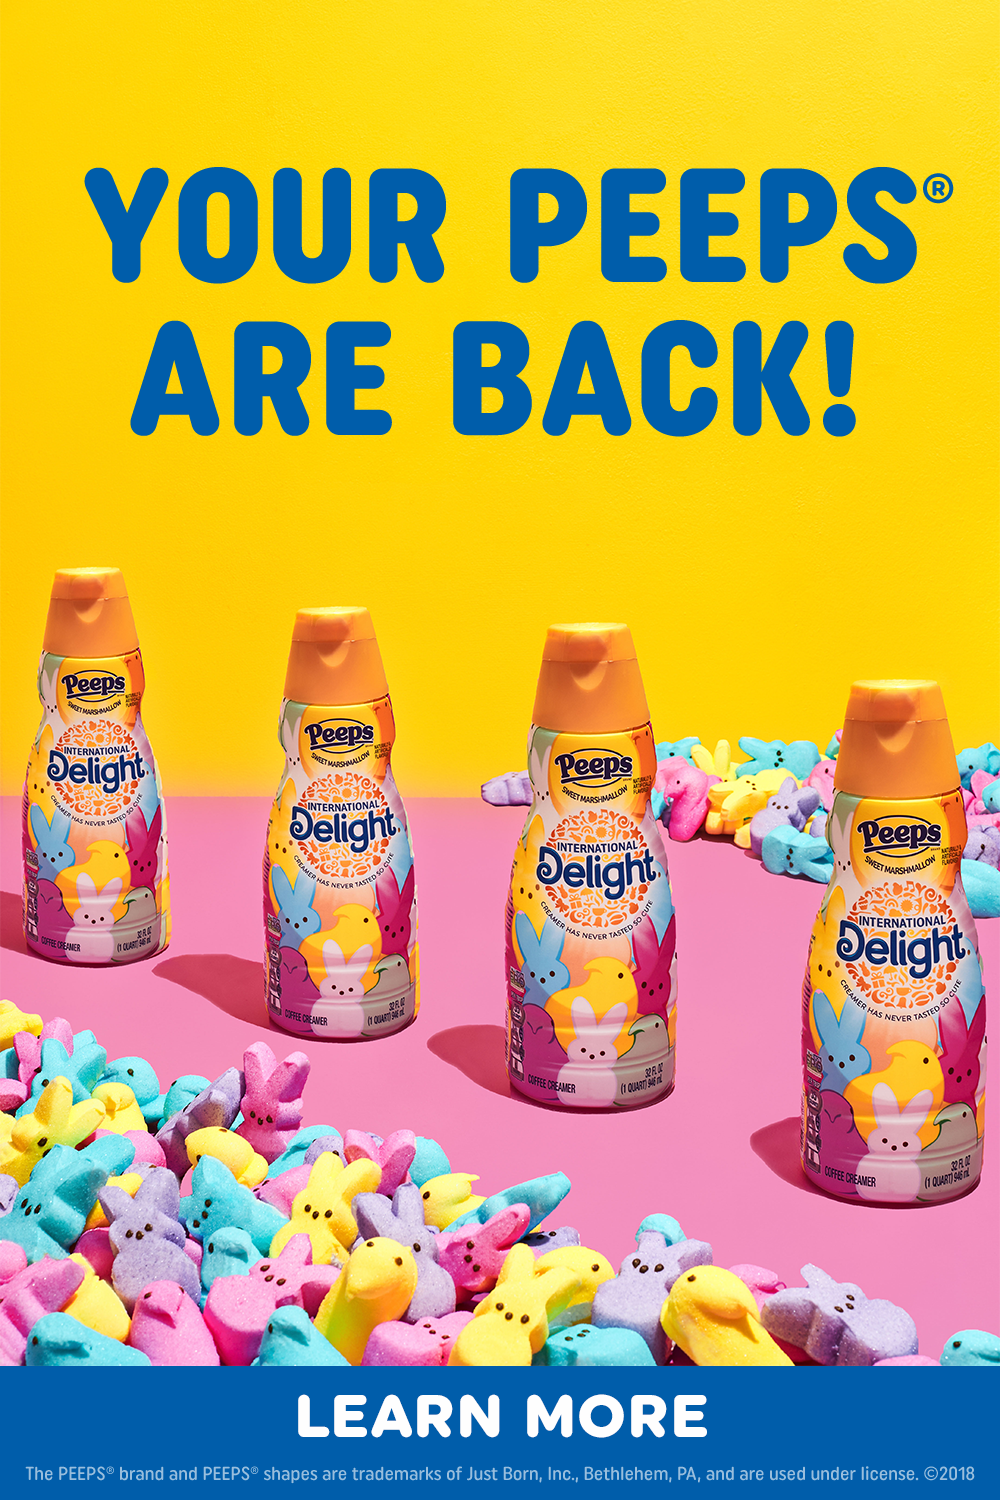 Your PEEPS® Are Back!